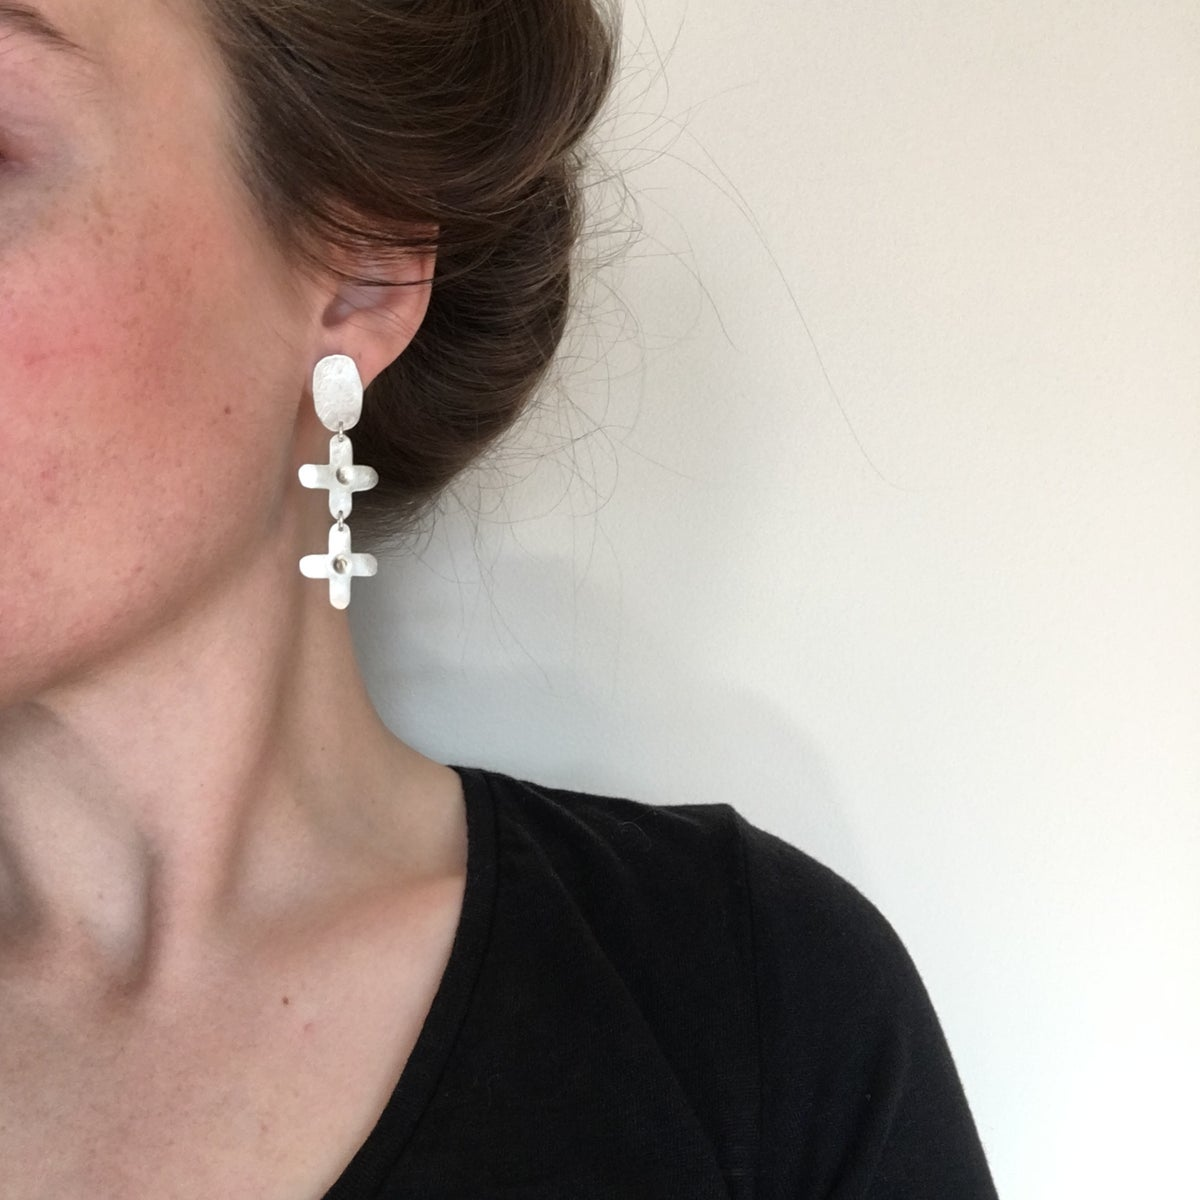 Image of mini anon earring